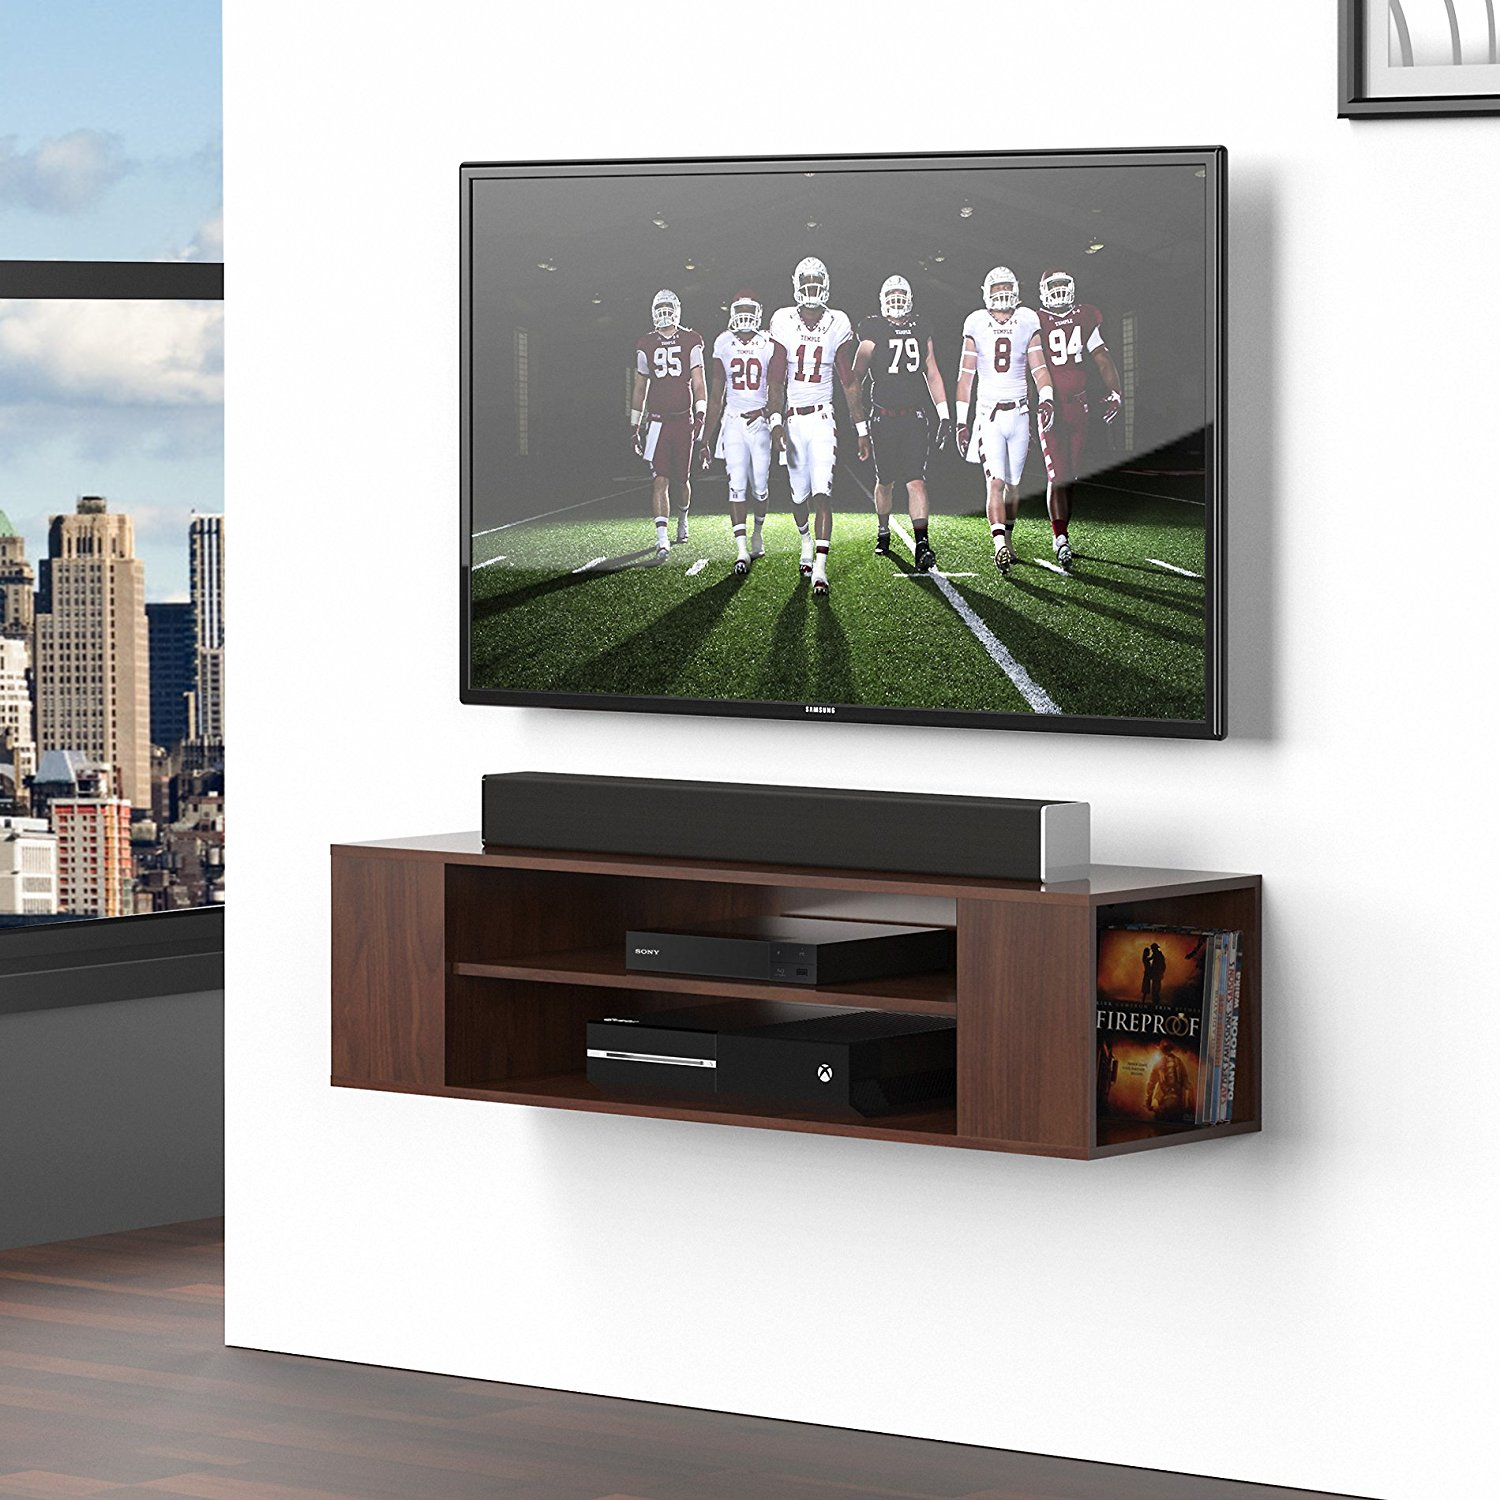 Fitueyes Walnut Universal Tv Stand Wall Mounted Media Console Shelf DS210001WB